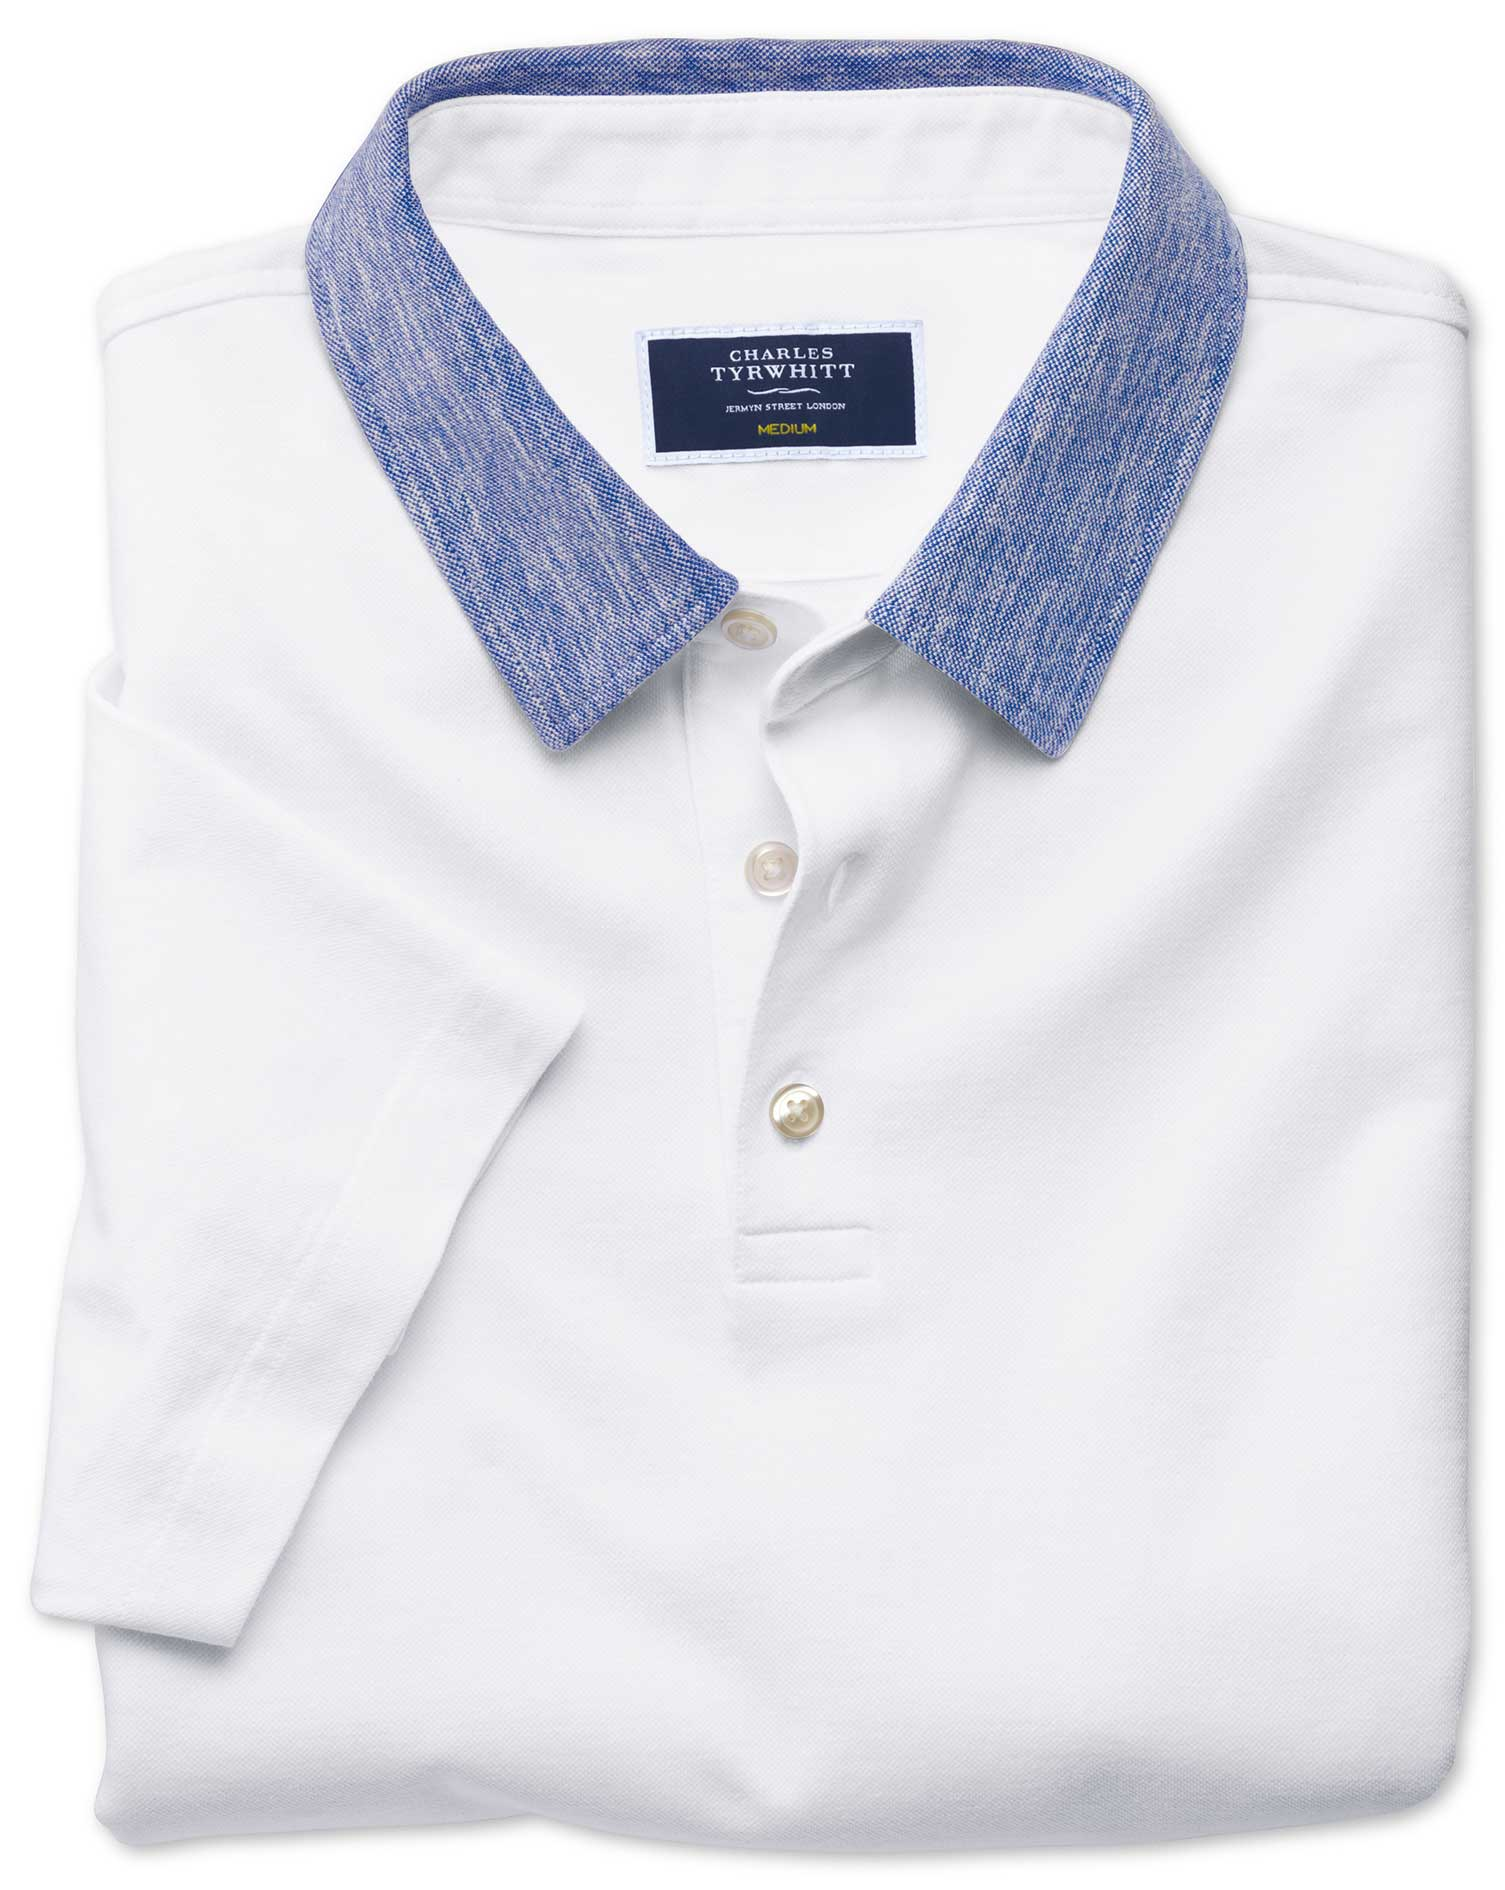 White Cotton Linen Polo Size XXXL by Charles Tyrwhitt